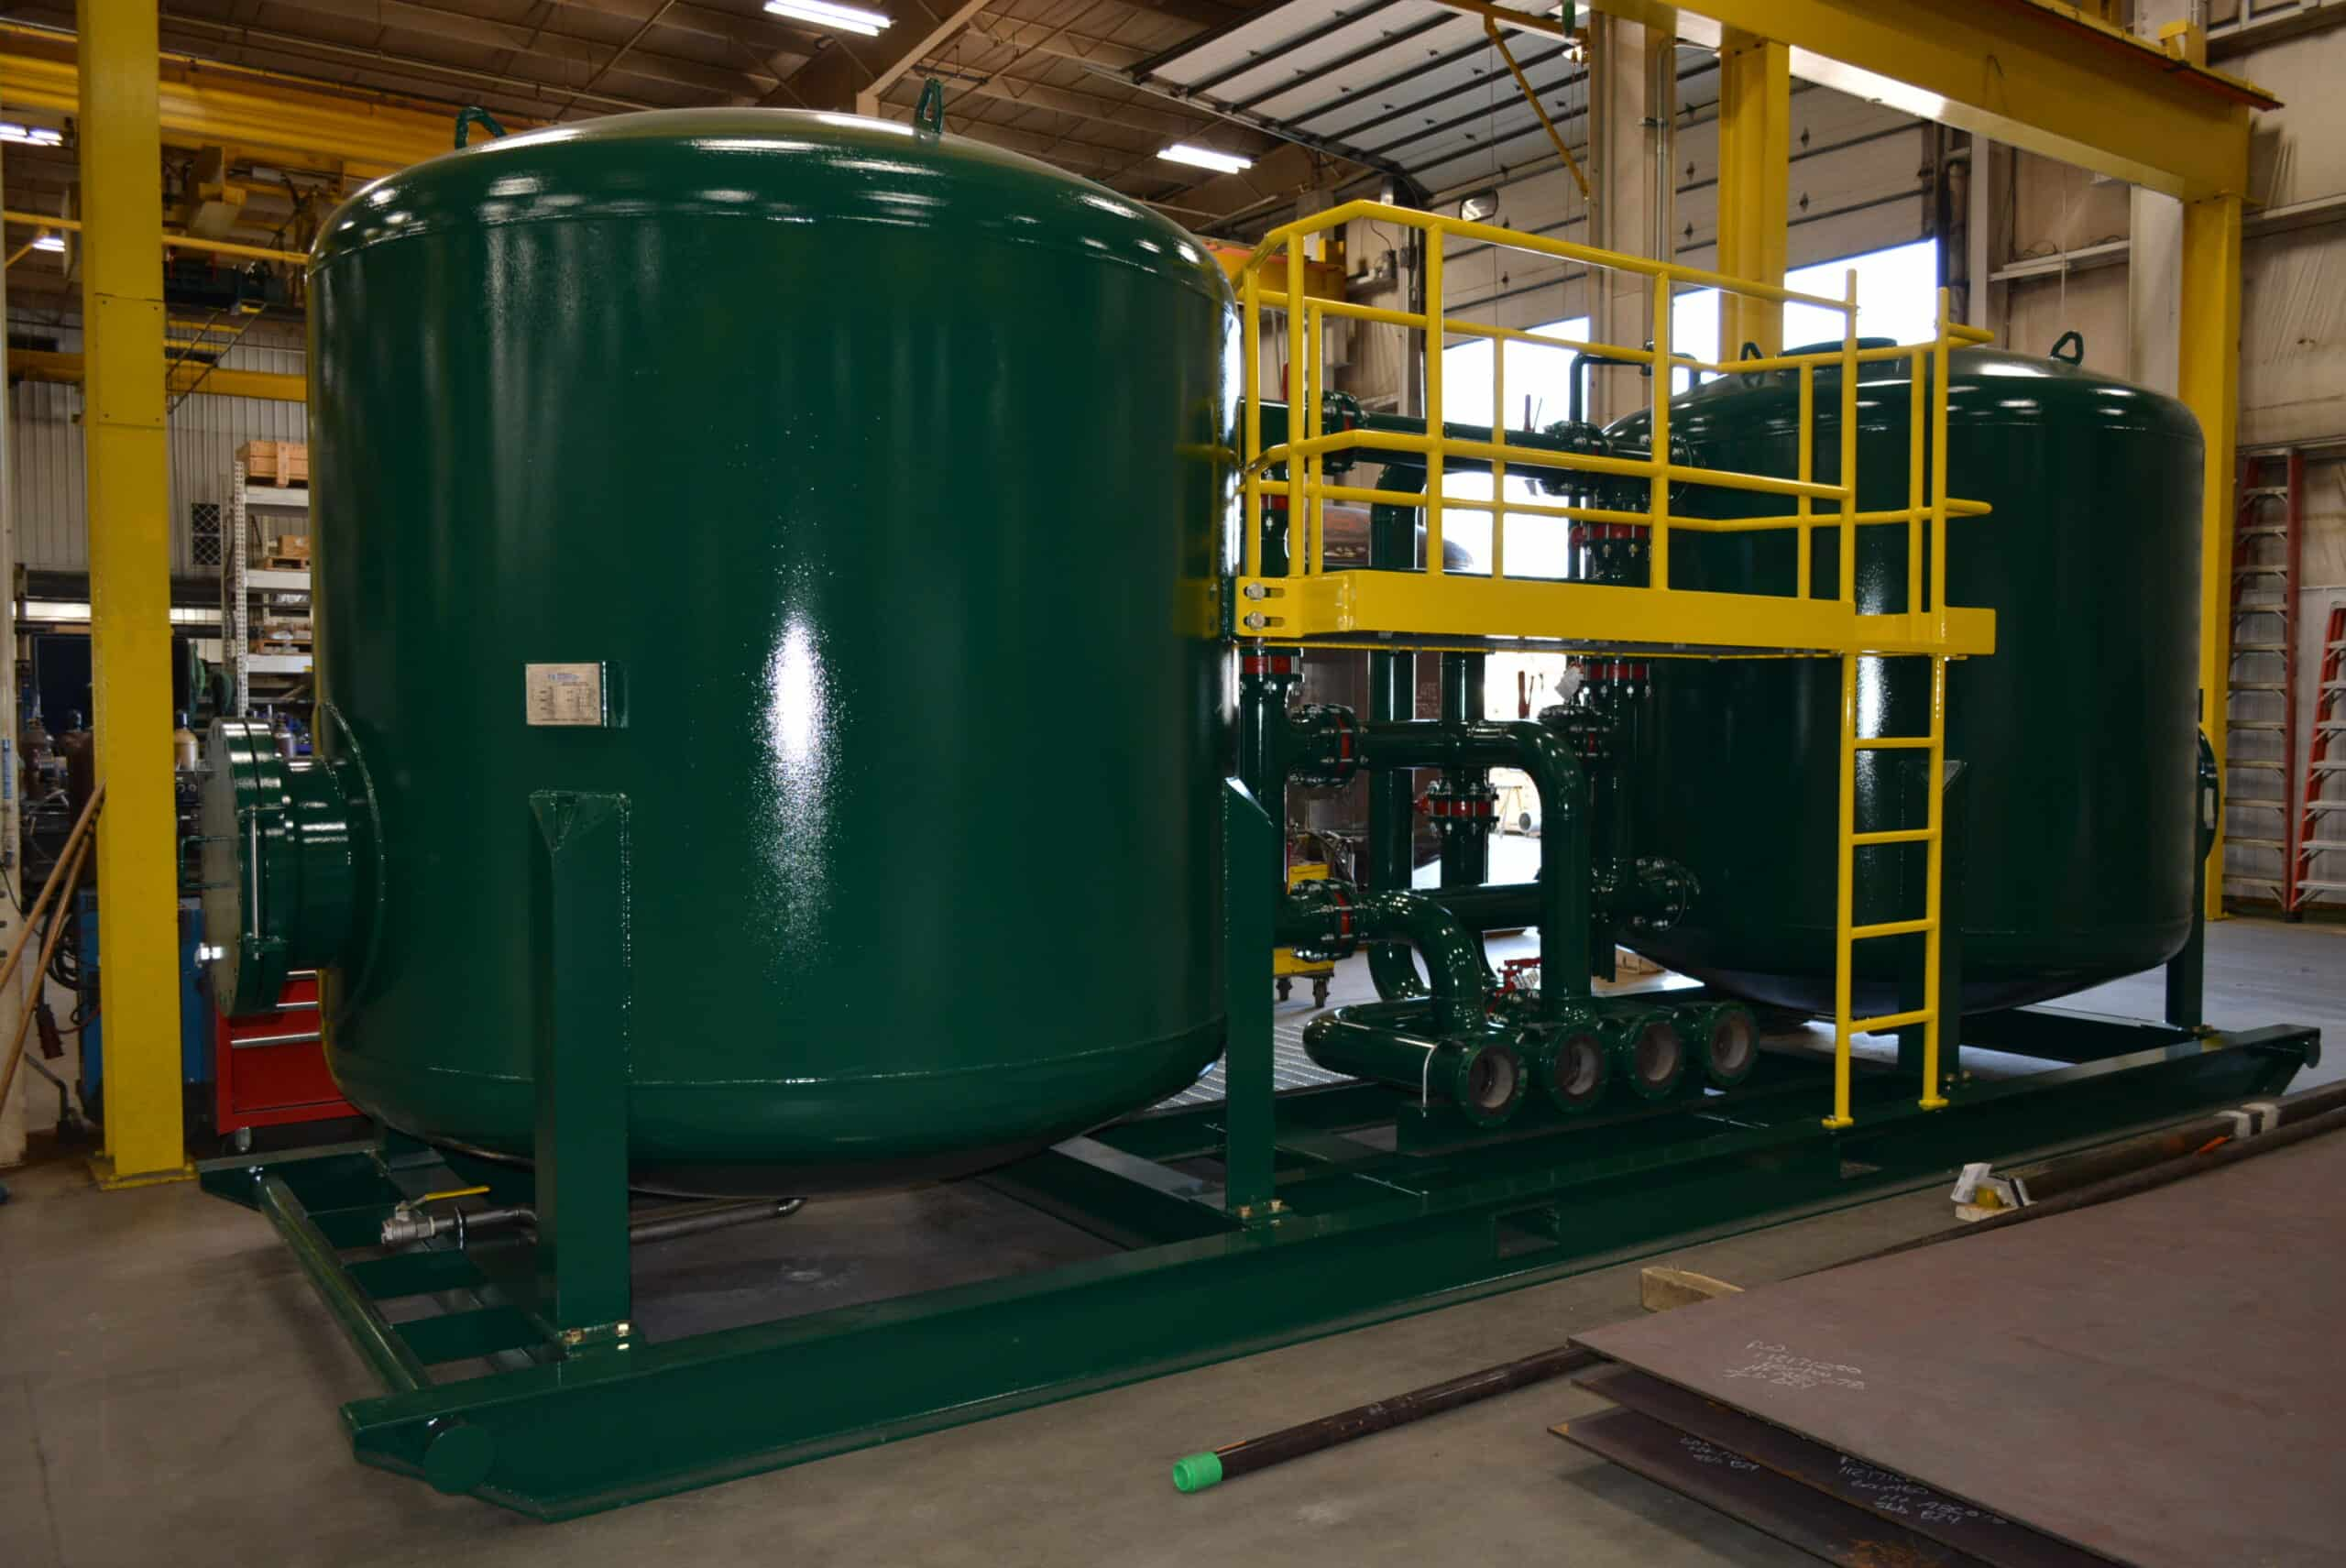 Filtration vessel fabrication includes mobile and permanent solutions